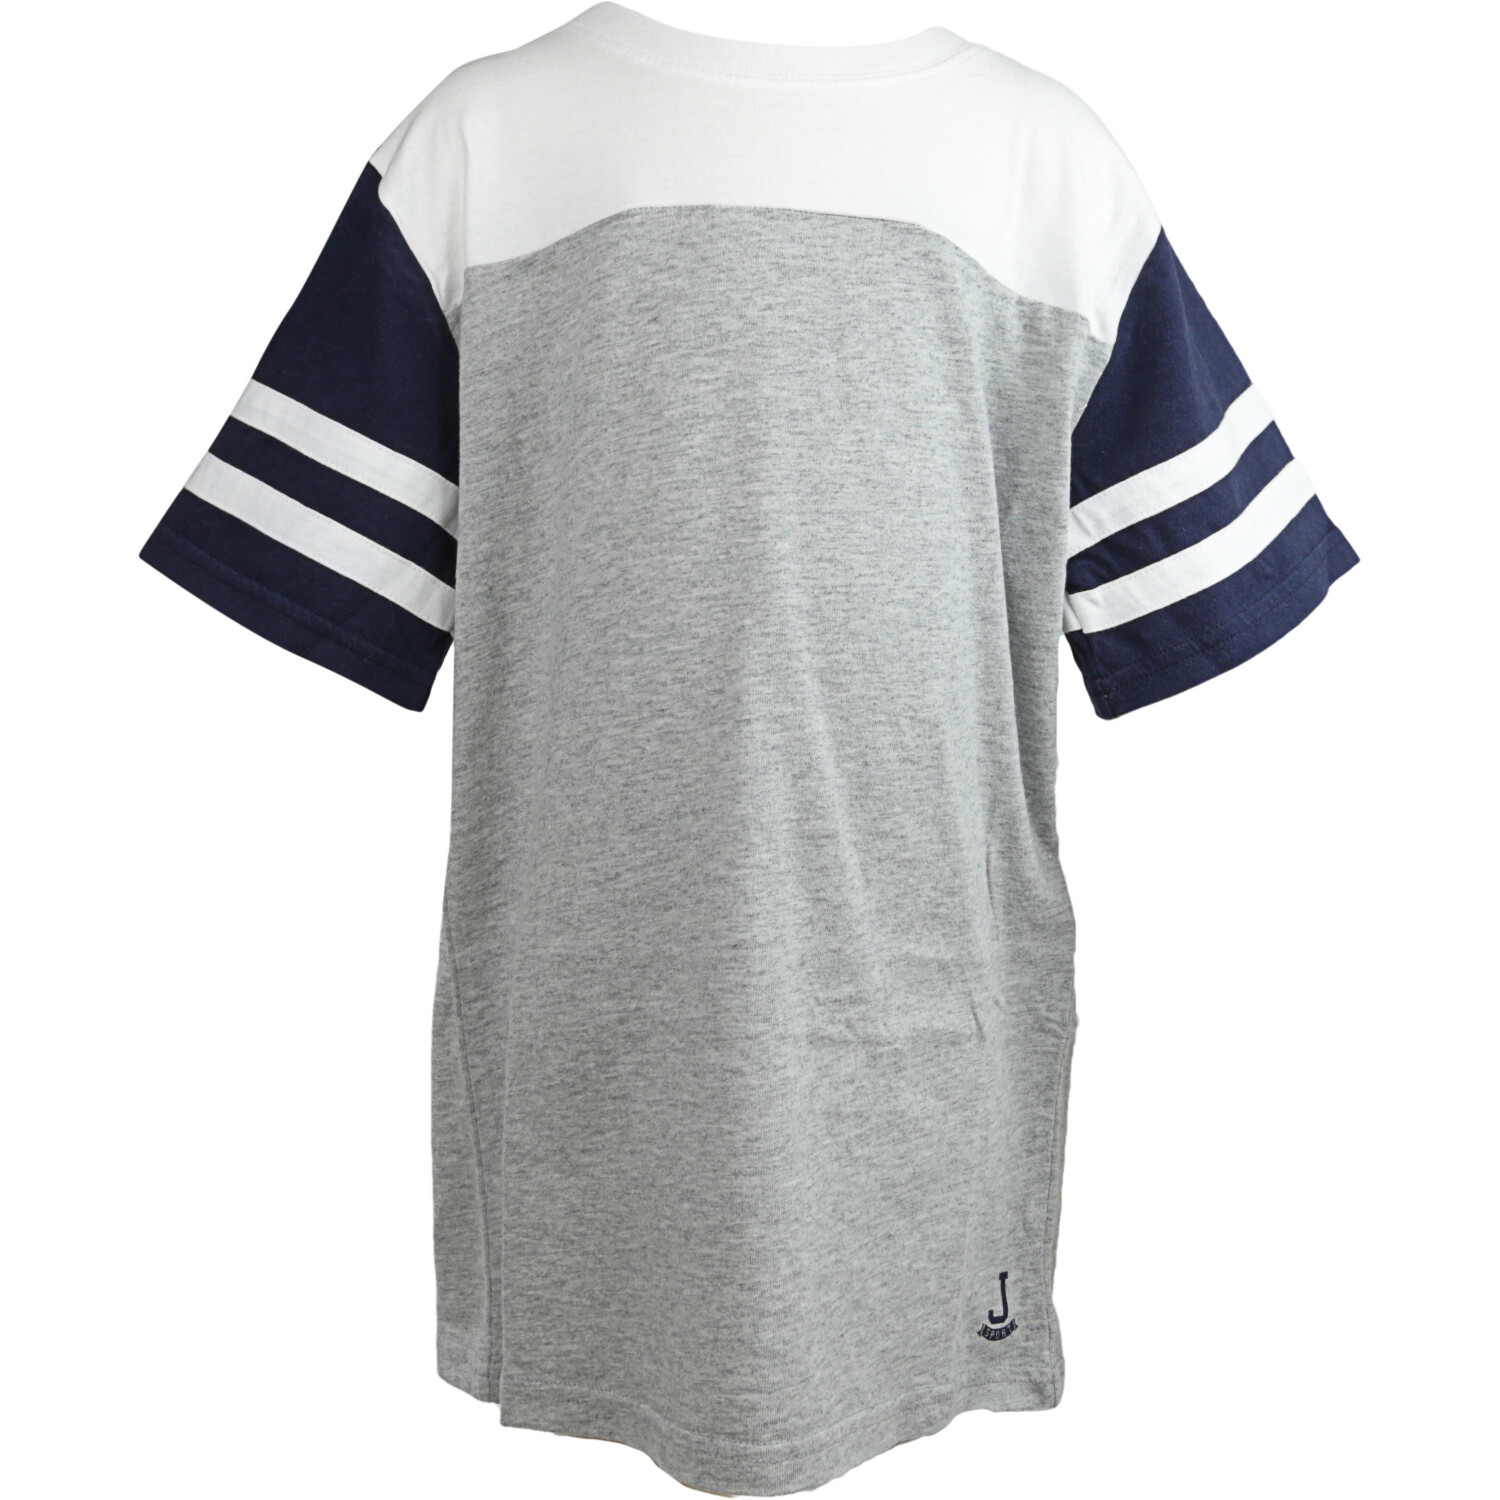 Janie And Jack Grey / White Striped Sleeve Colorblock Tee T-Shirt - 4